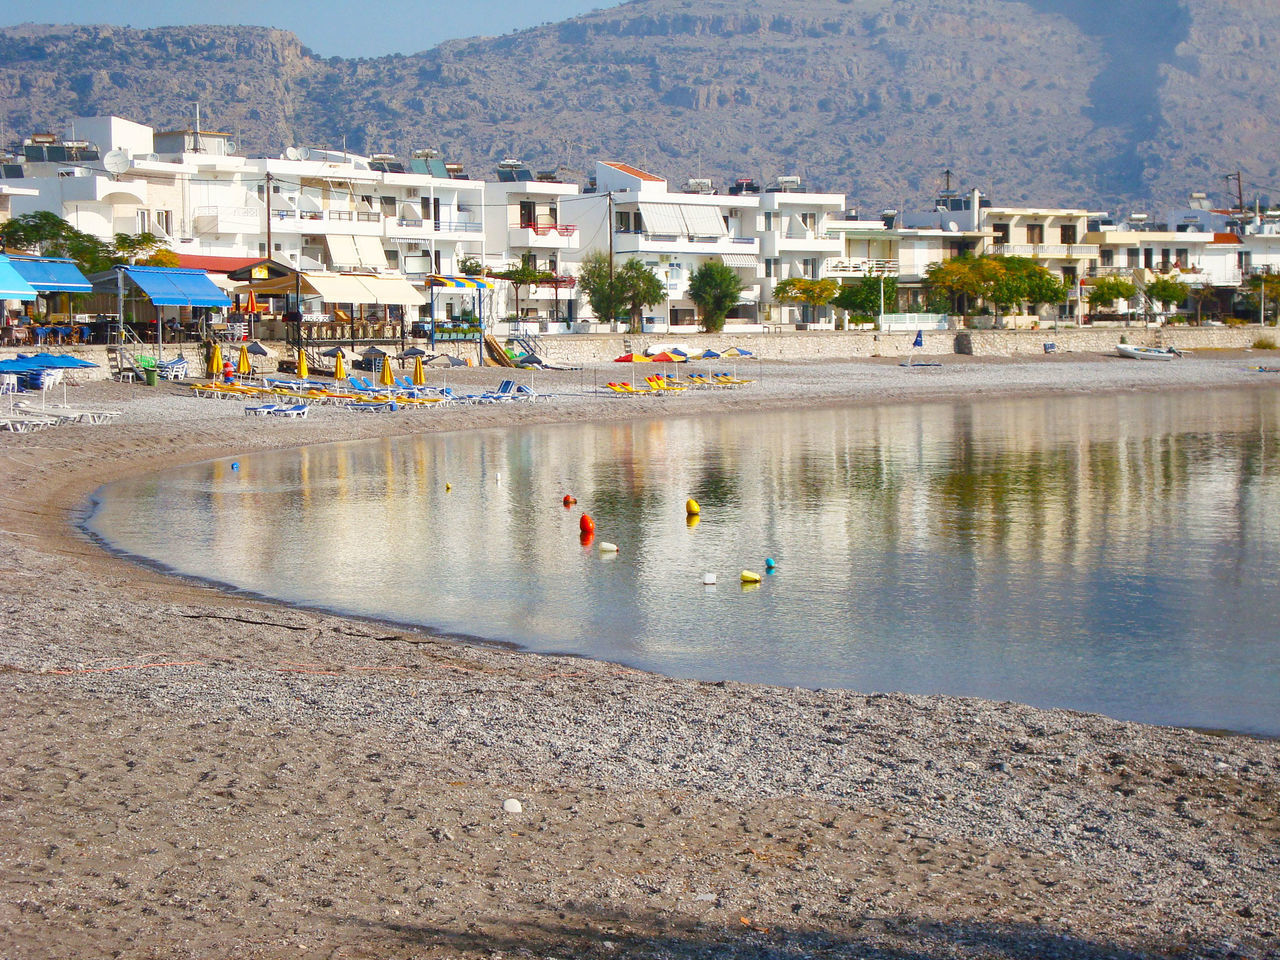 Summer Views Sea View... Love It!  Sea View Blue Sky Blue Sea Photography Landscape Landscape_photography Tranquility Scene Admiring The View Beach Photography Beach Time Seascape Love Summer No People Tranquil Scene Tranquility Charaki Beach Rhodes